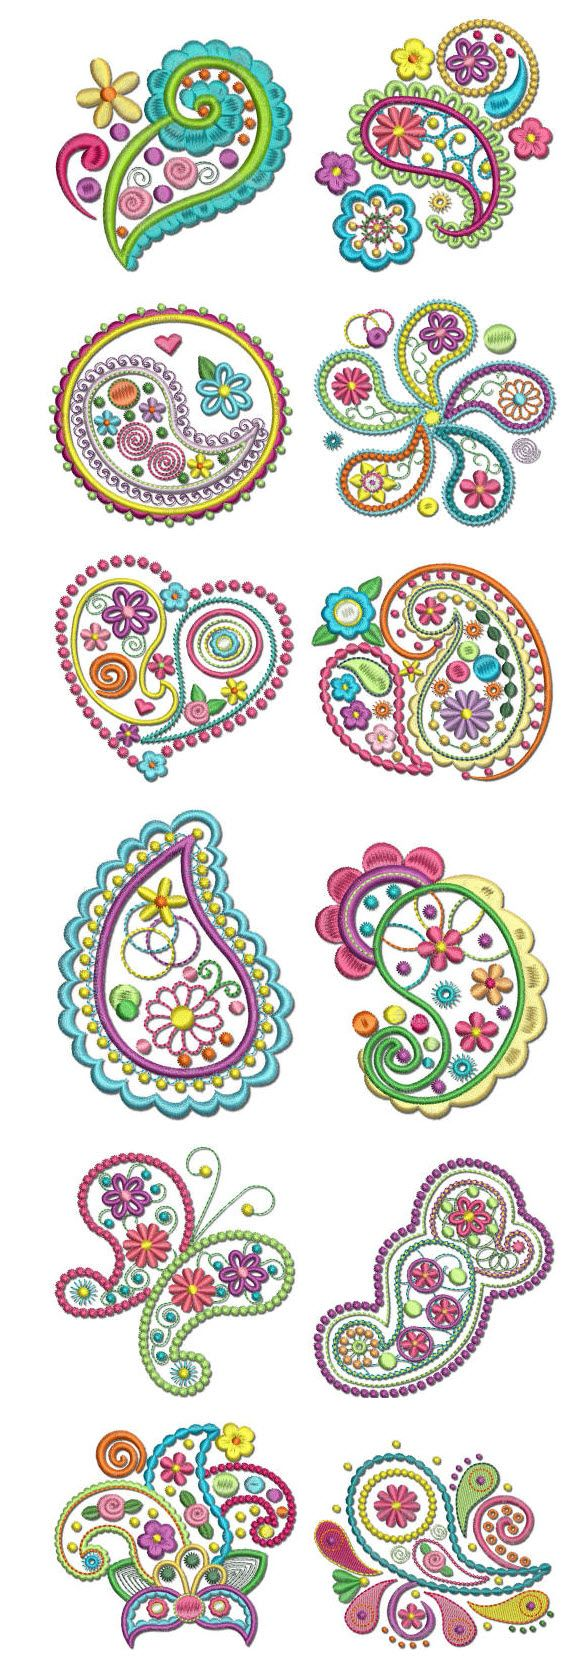 These are just to pretty not to repin. I can see this as embroidery, a cookie design, patches on a cute tote bag, limitless ideas with this.